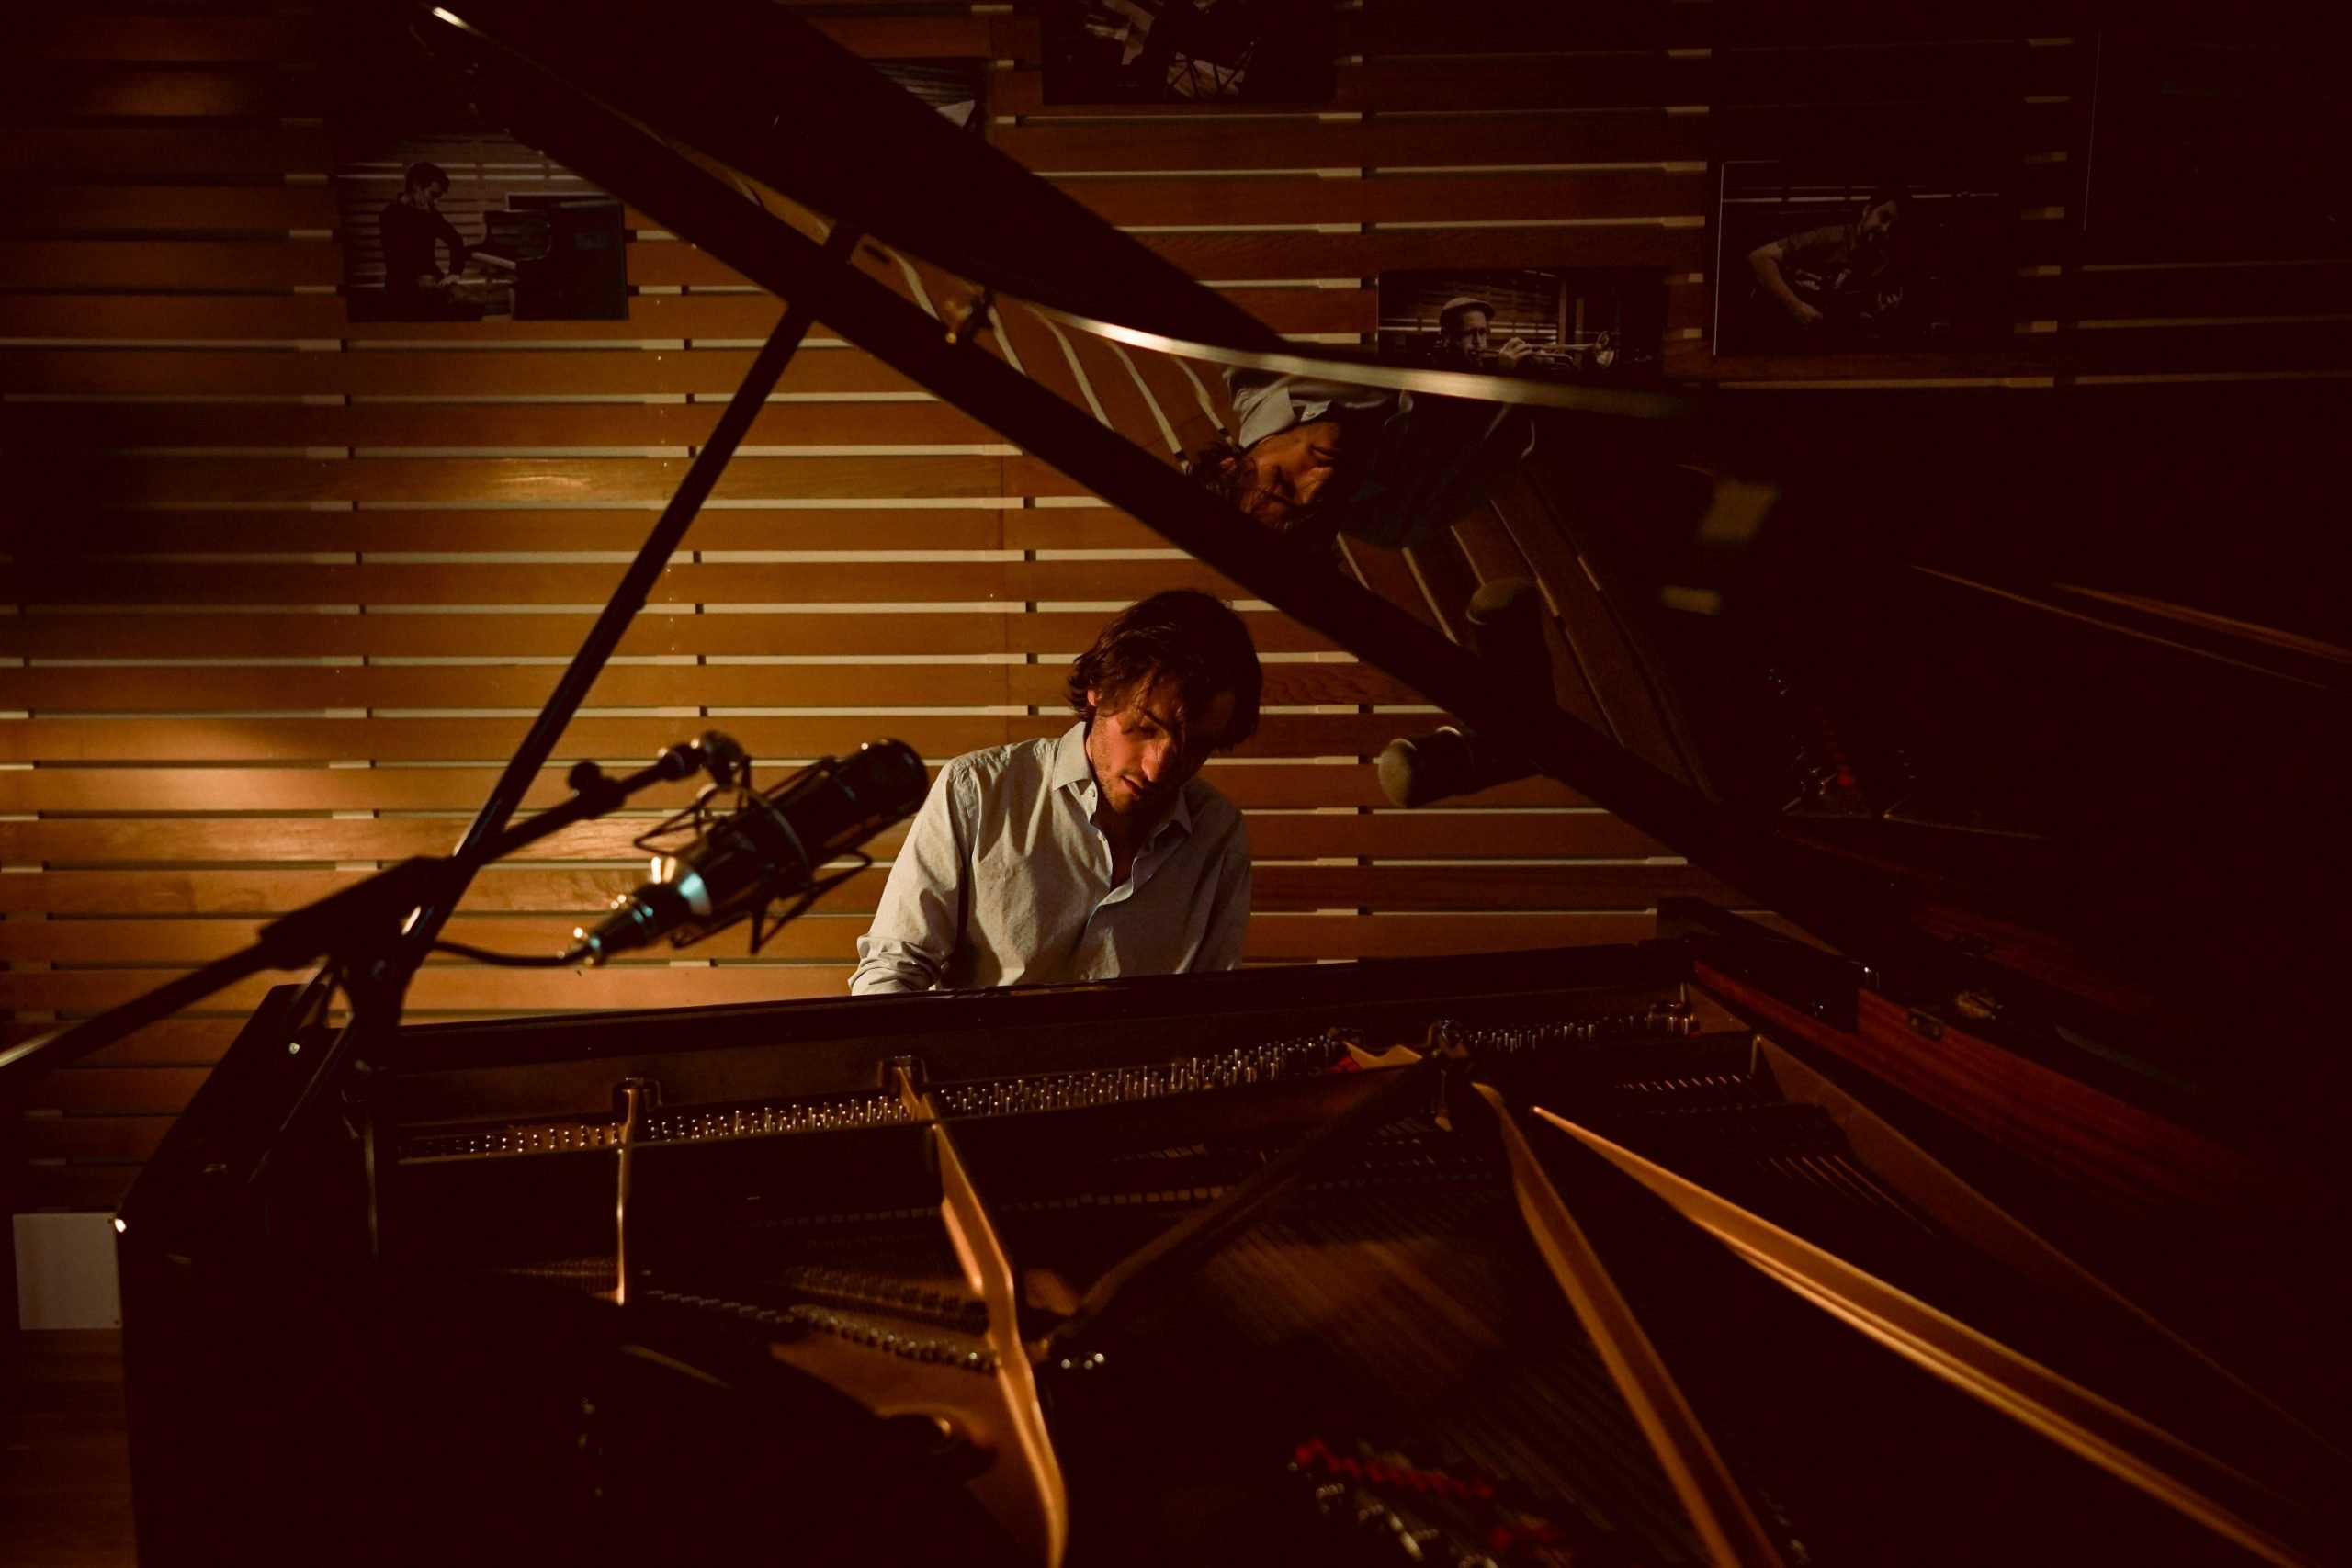 Emanuele Filippi Jazz Pianist and Composer